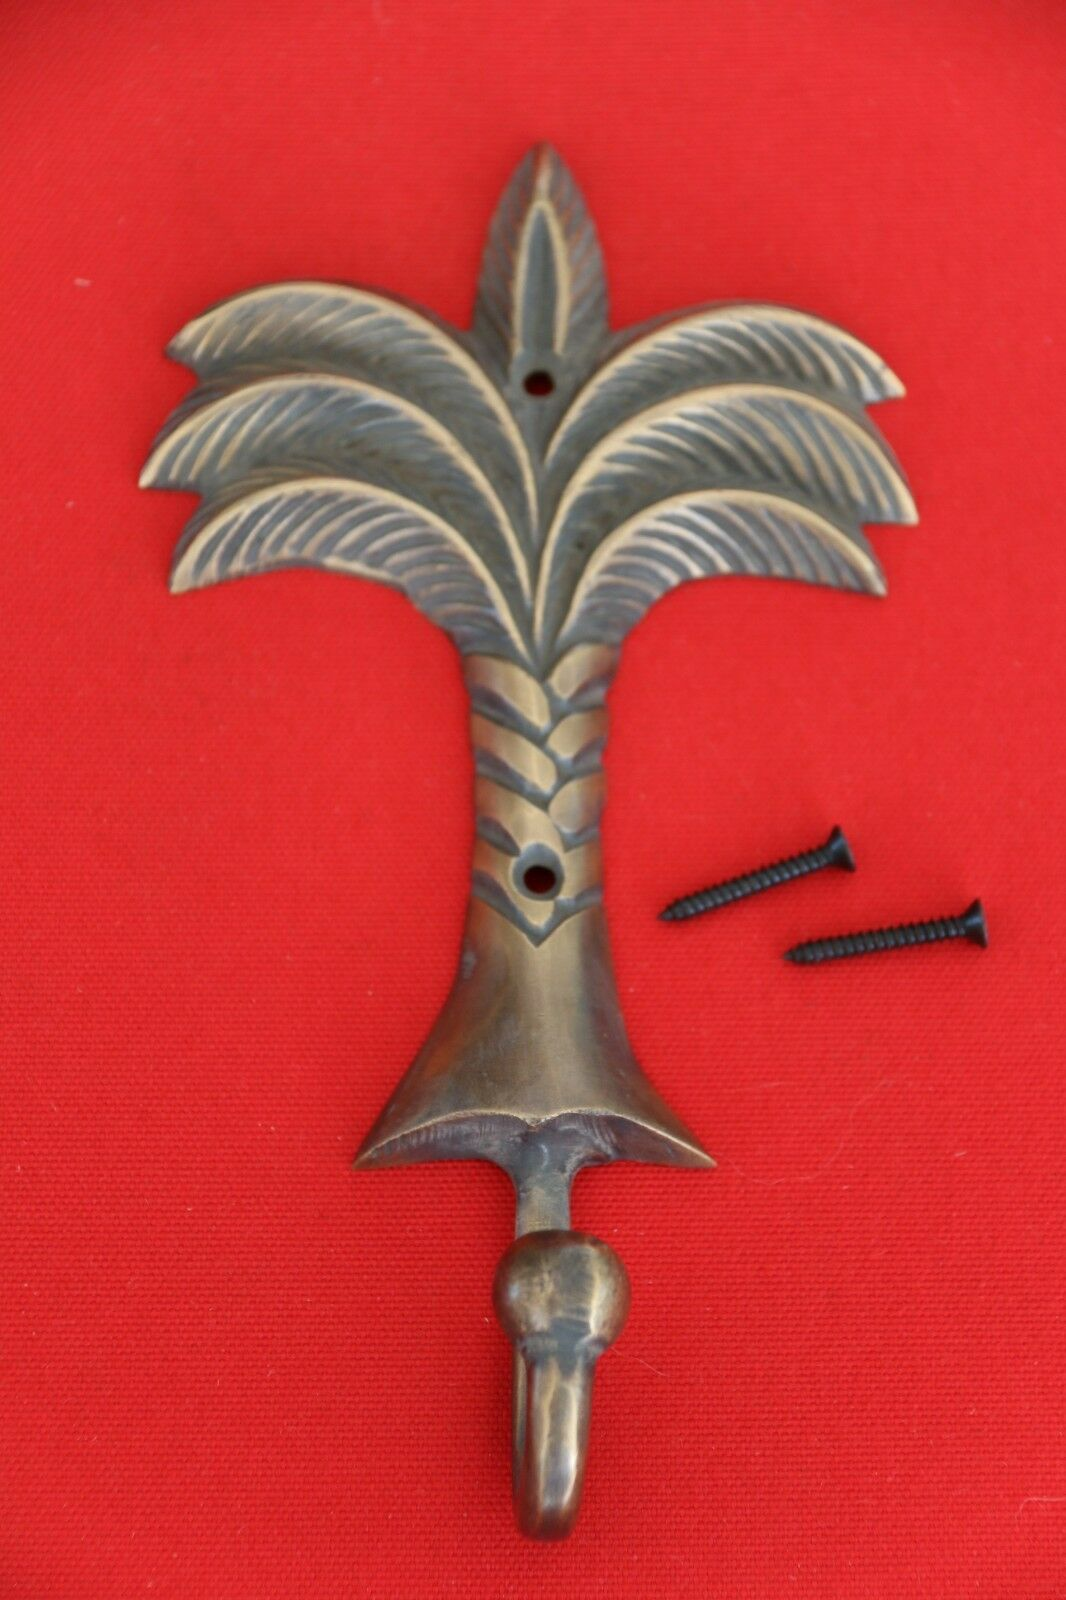 New BRASS Palm Tree Hook - Decorative Wall Hook - Furniture Accessories